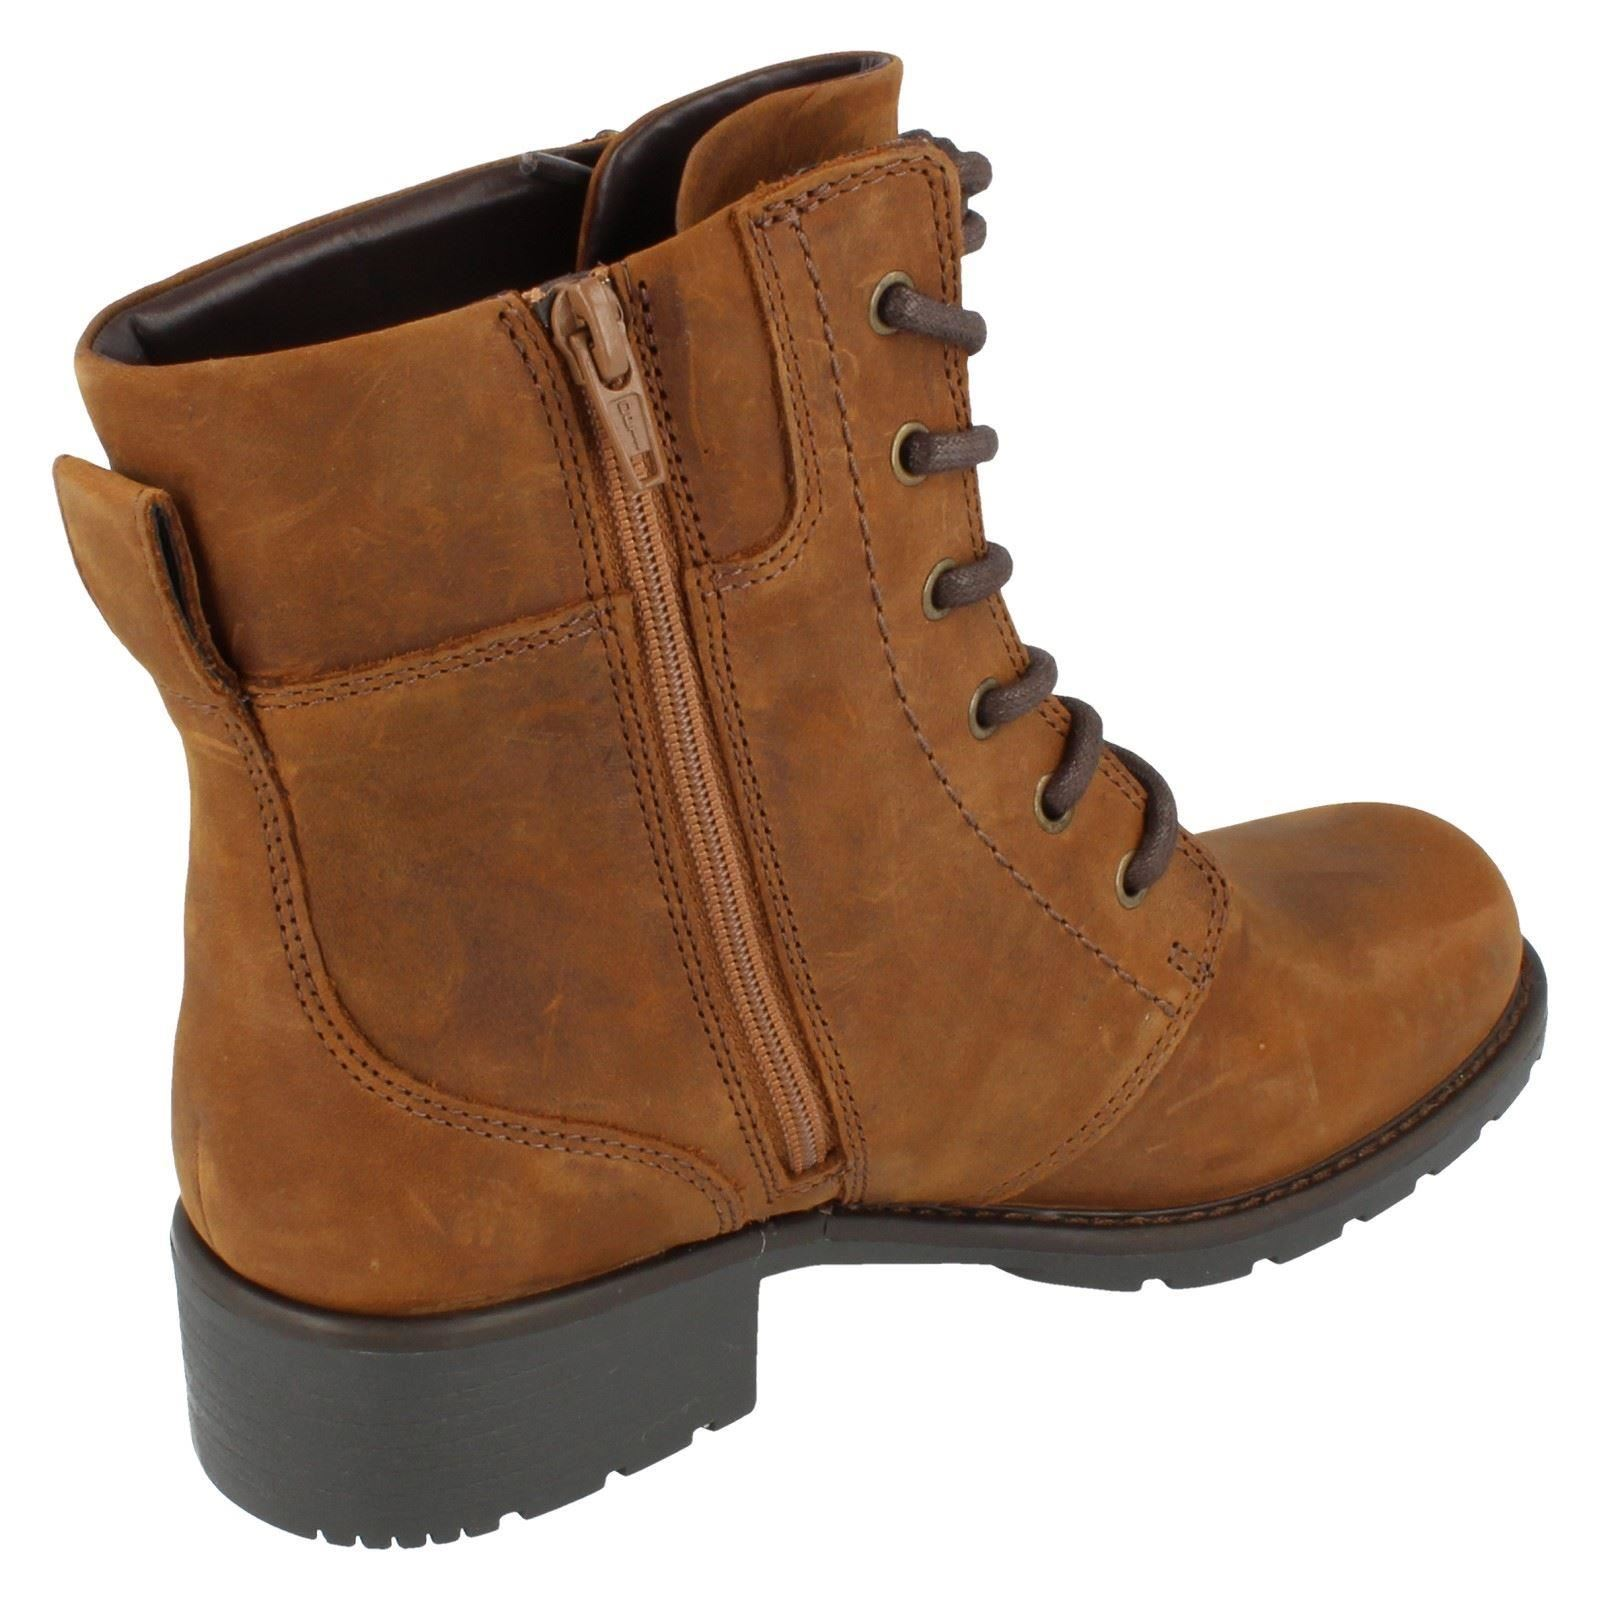 Ladies-Clarks-Casual-Lace-Up-Inside-Zip-Nubuck-Leather-Ankle-Boots-Orinoco-Spice thumbnail 15